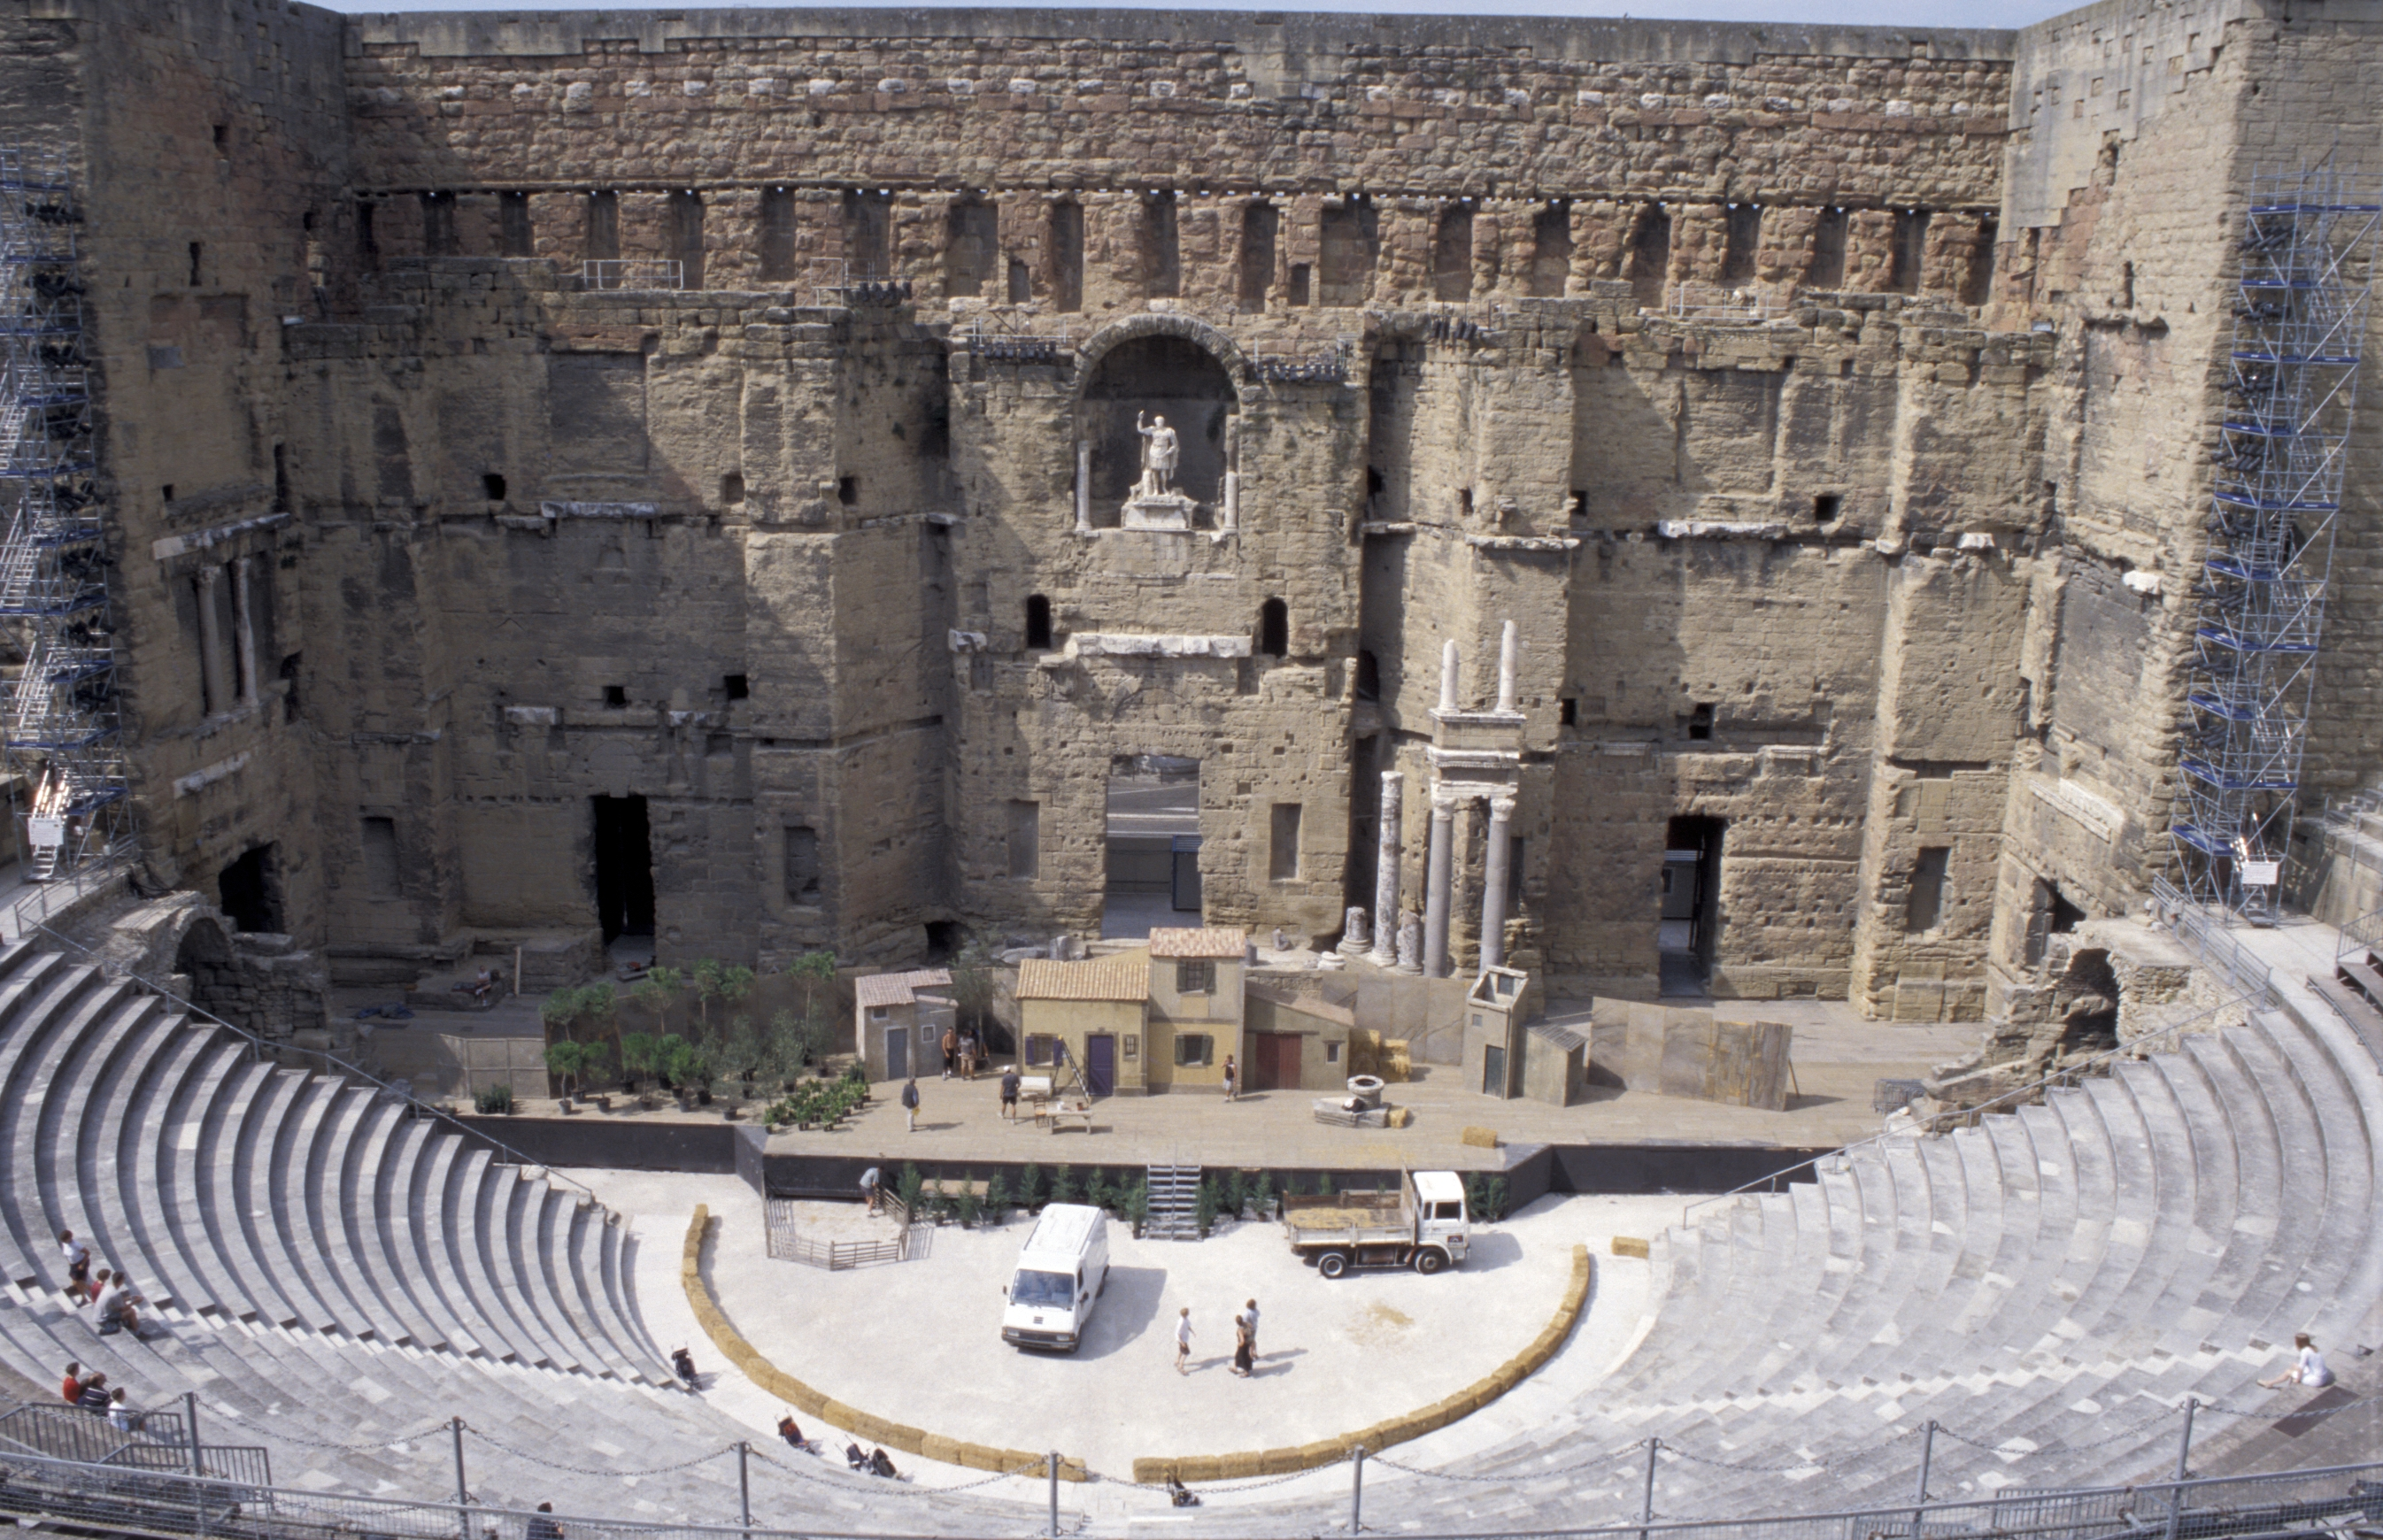 Travel back in time and enjoy an Opera at the Roman Theatre of Orange Photo: Tyler Bell/Flickr